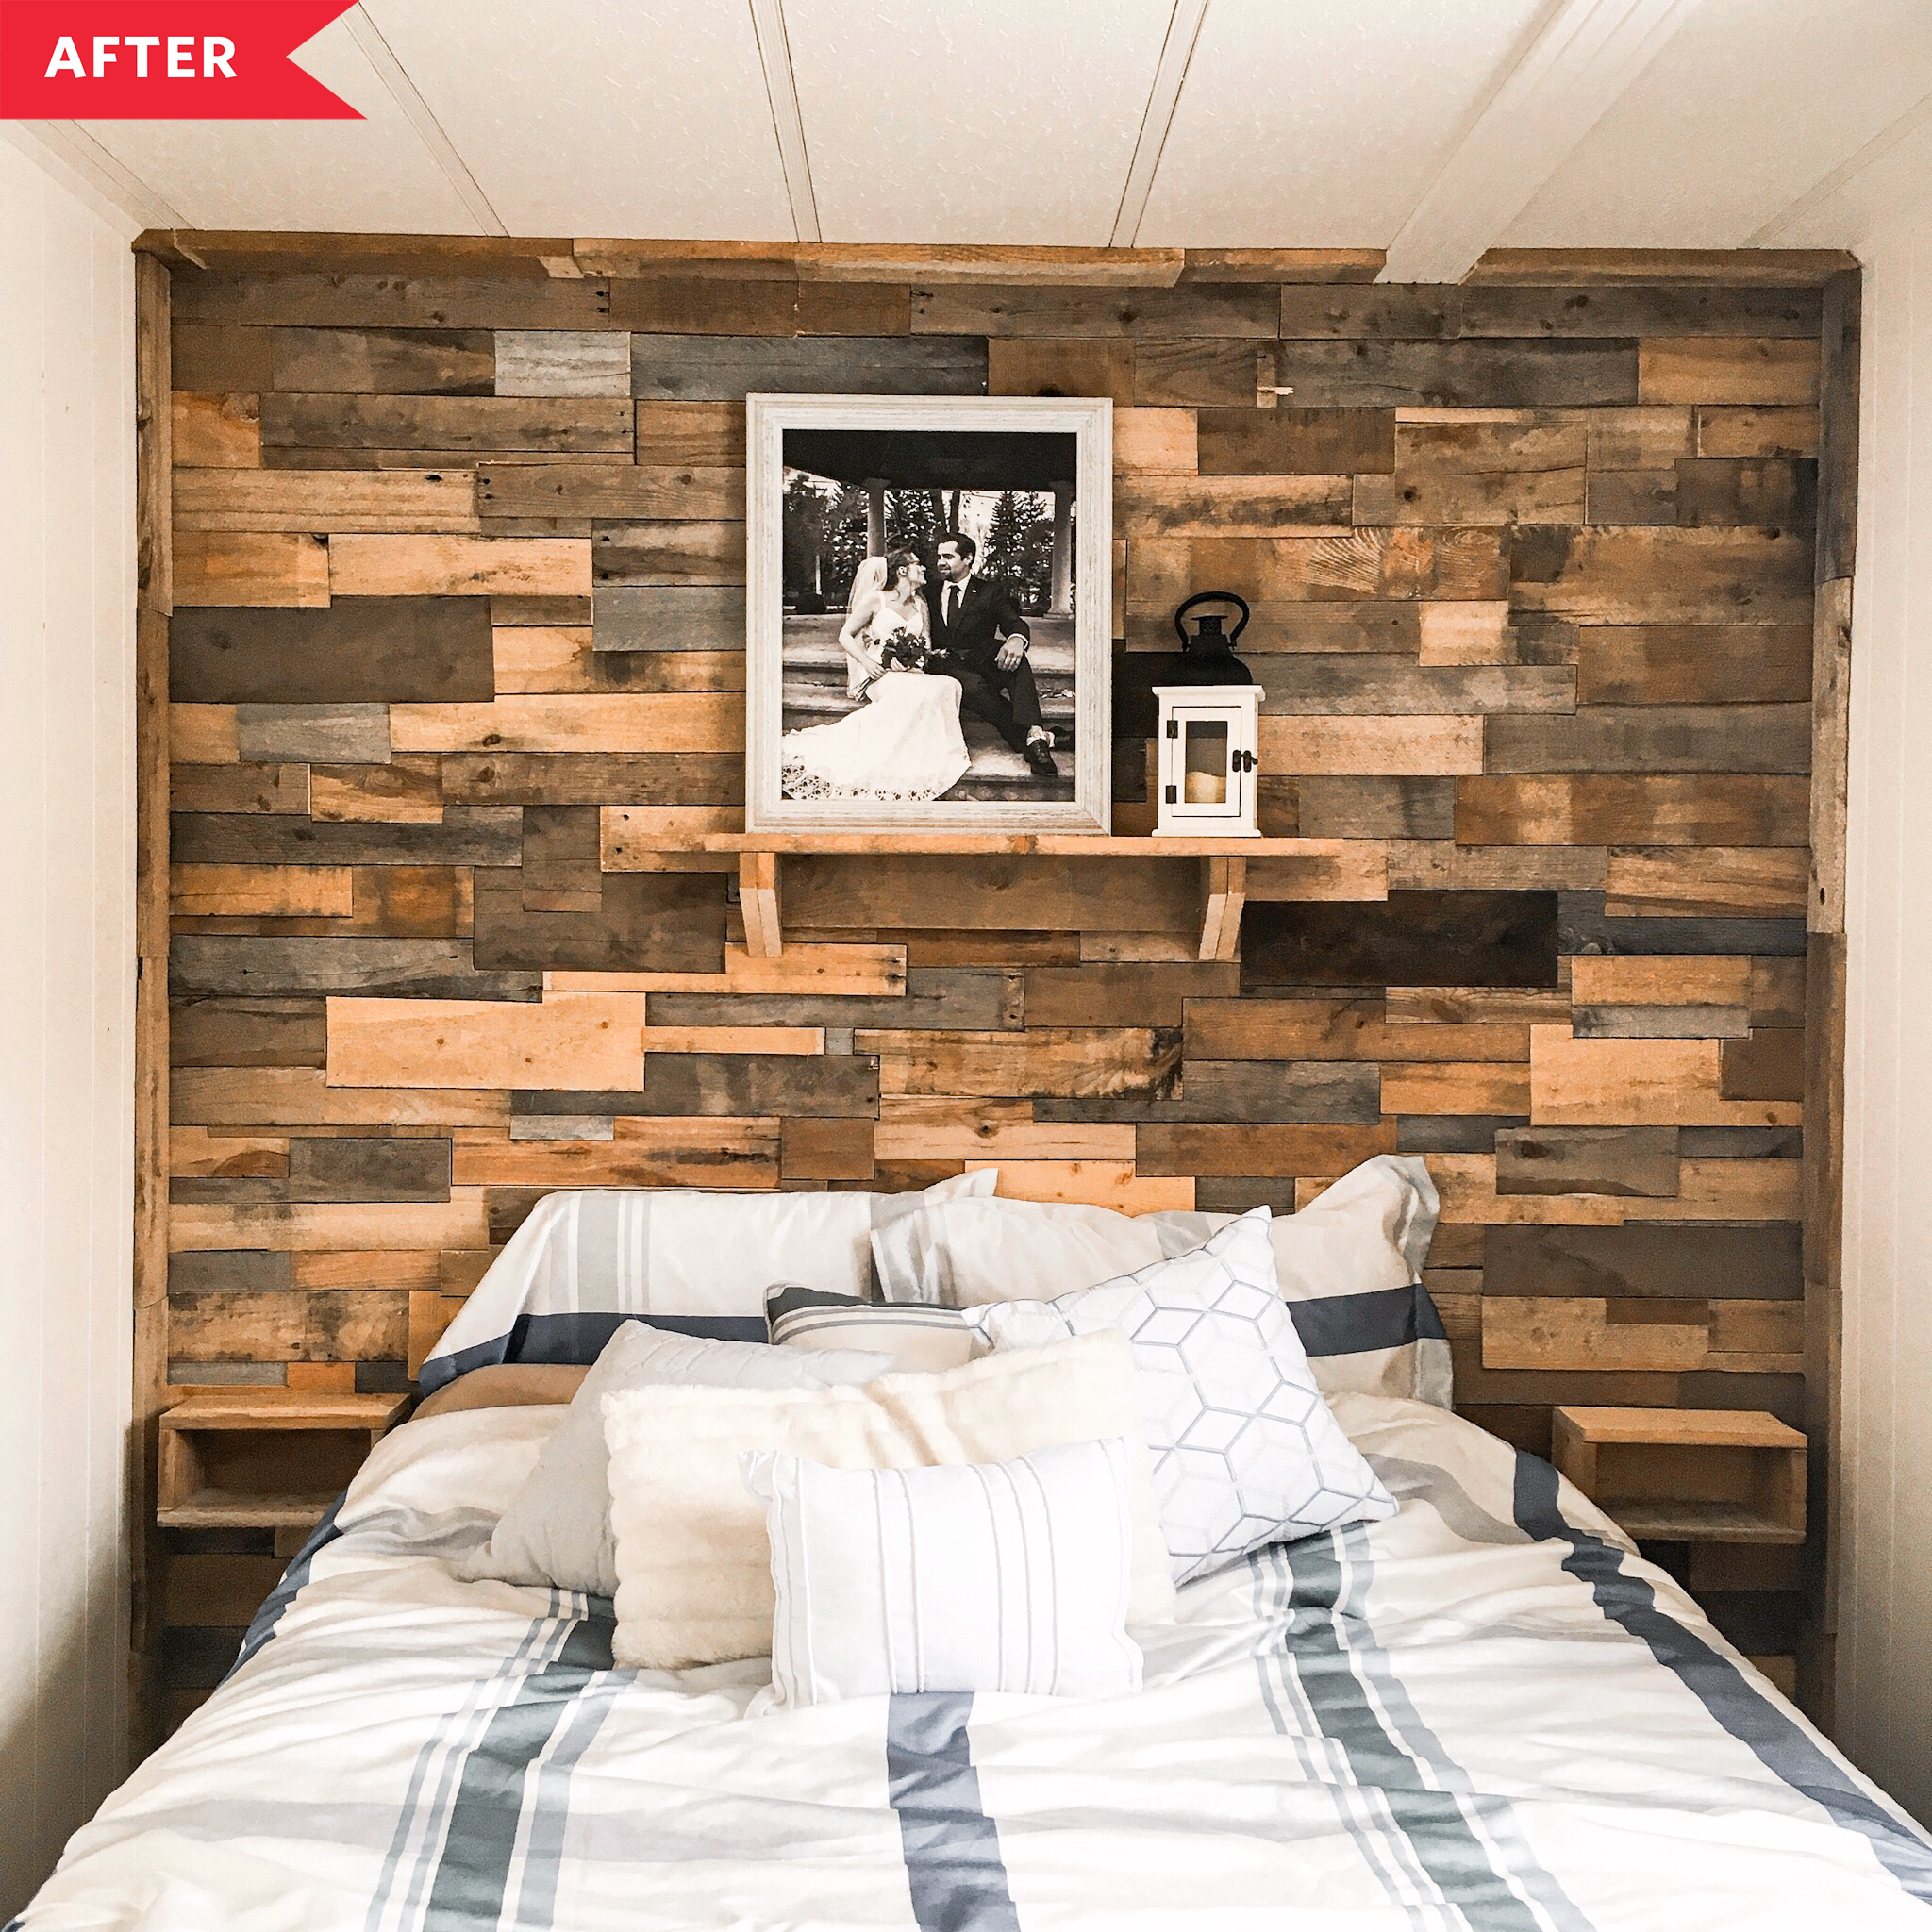 20 Best Bedroom Makeovers Before After Photos Of Redesigns Apartment Therapy